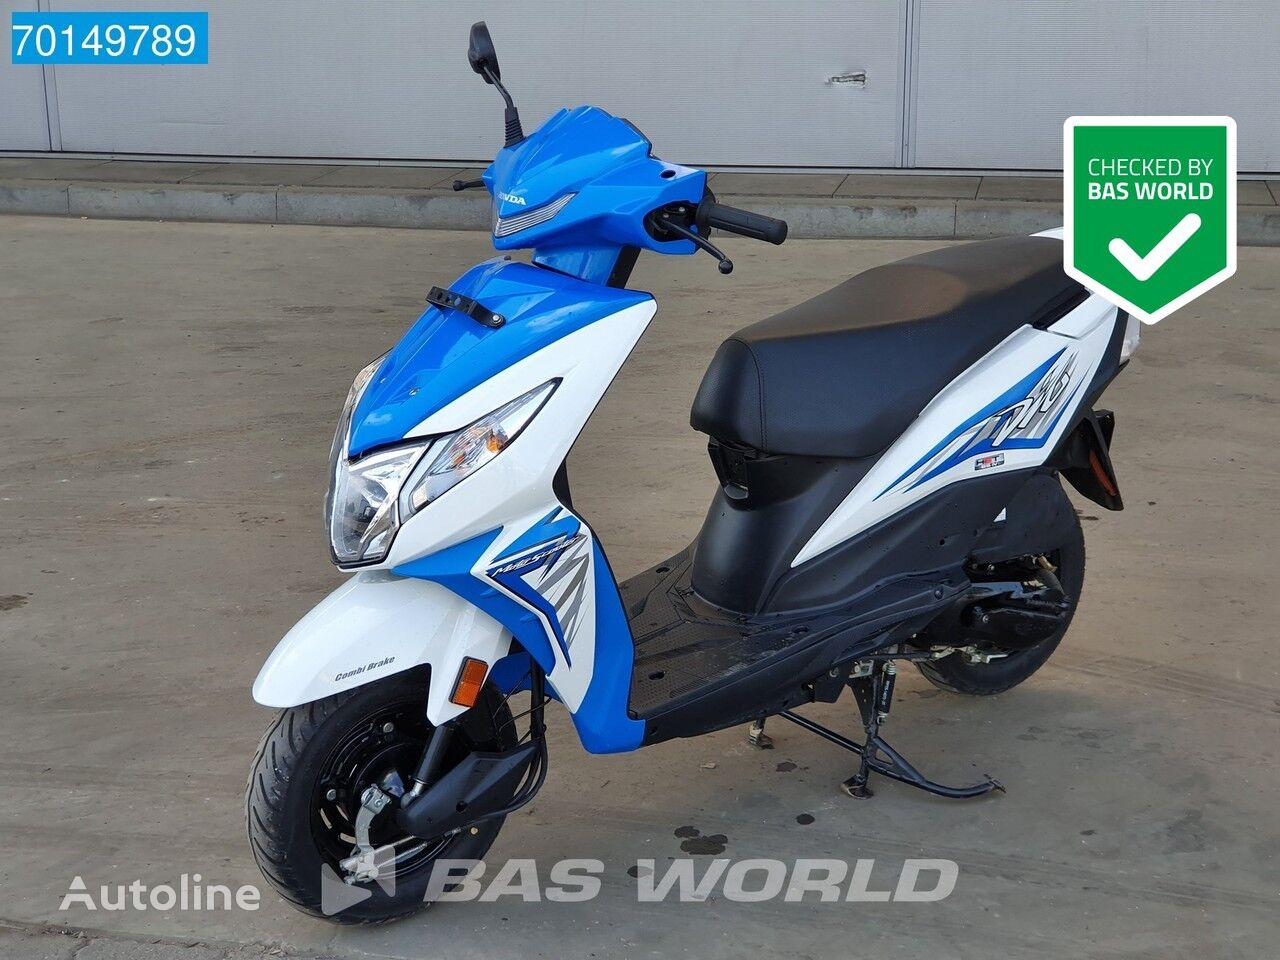 new HONDA DIO 2 axles NEW UNUSED - 110CC SCOOTER scooter